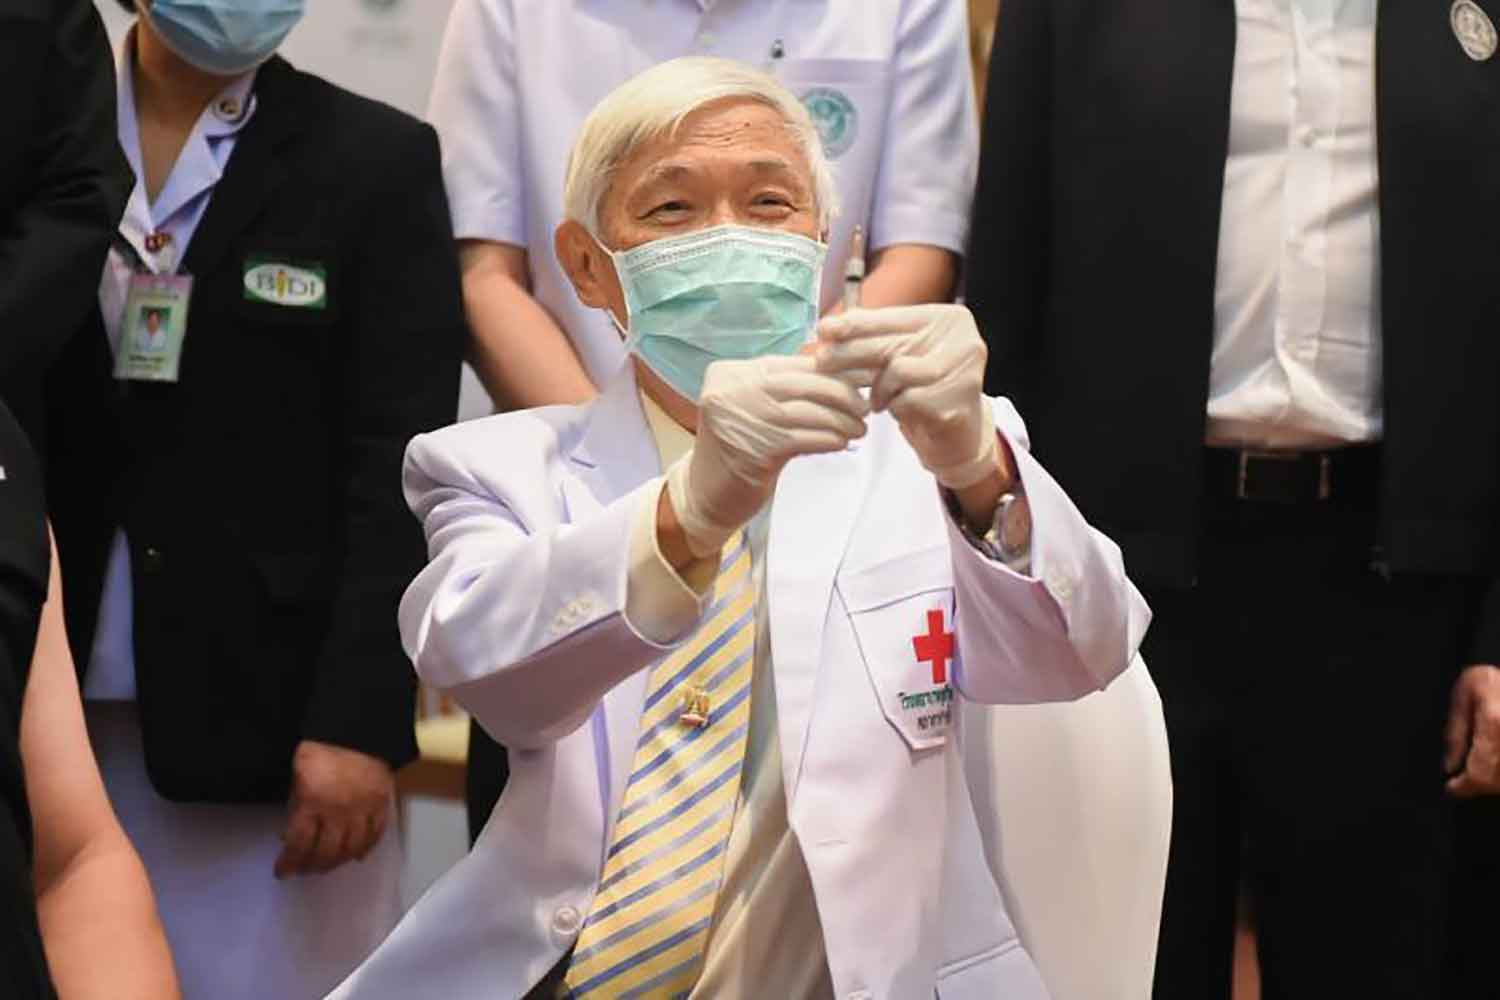 Virologist Yong Poovorawan shows a Covid-19 vaccine dose at Bamrasnadura Infectious Diseases Institute in Nonthaburi province on Feb 28. (Government House photo)